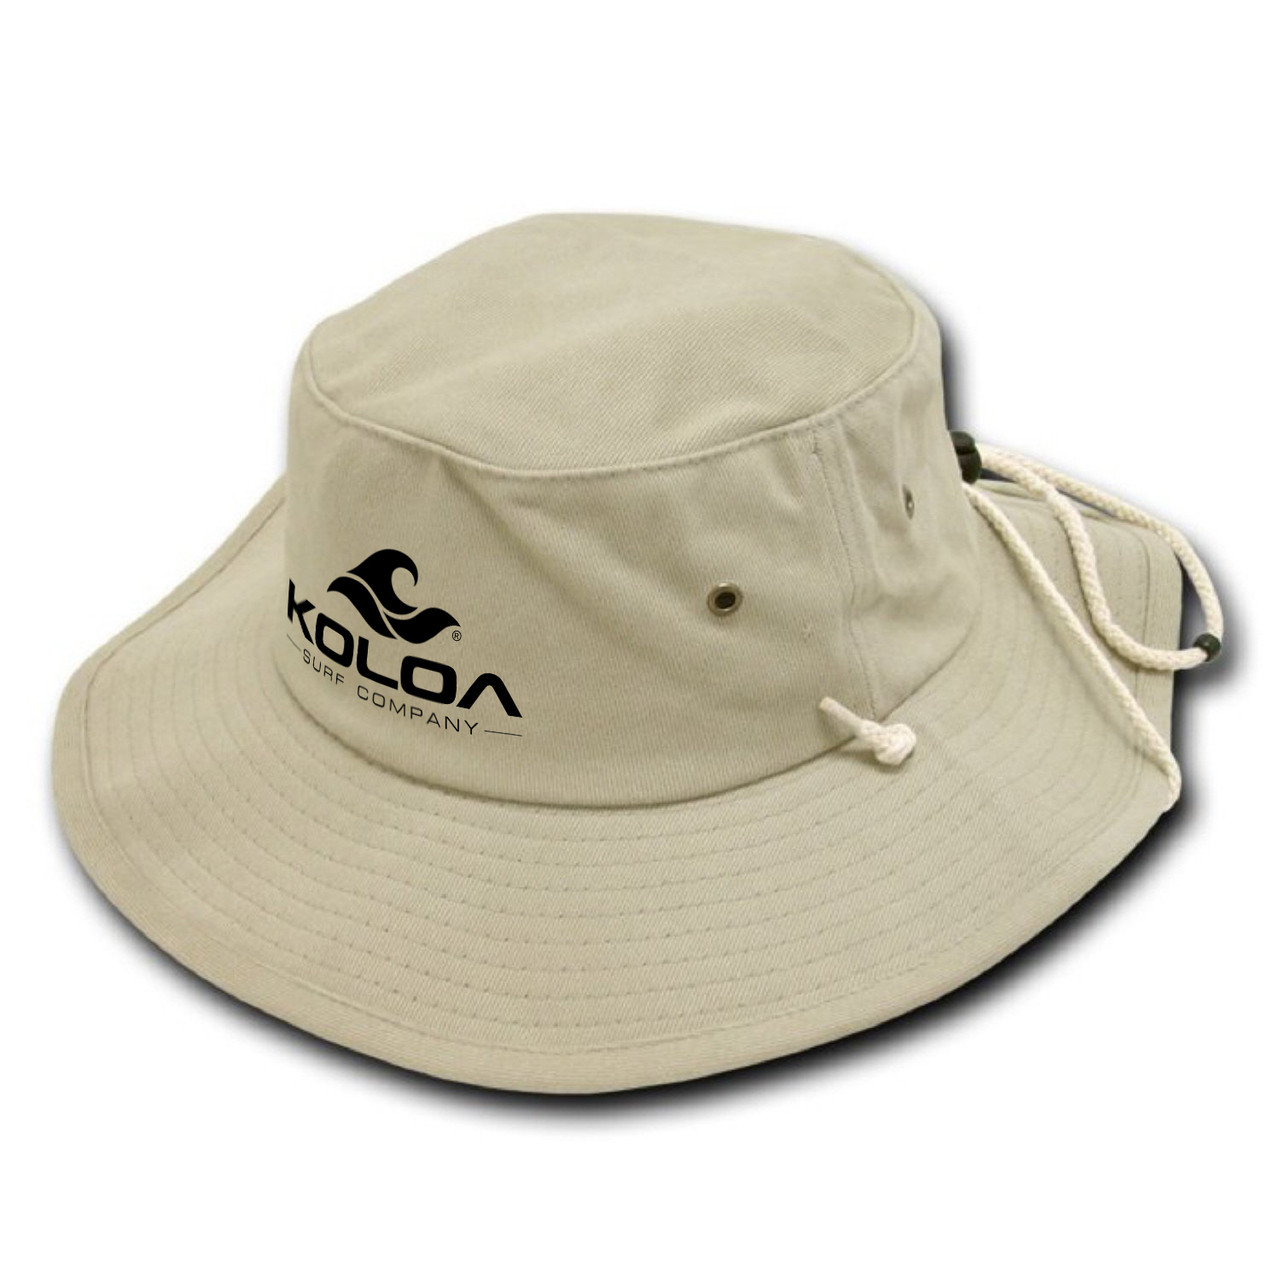 b732265cb0c Koloa Surf Co. Aussie Style Outback Drawstring Adult Bucket Hat